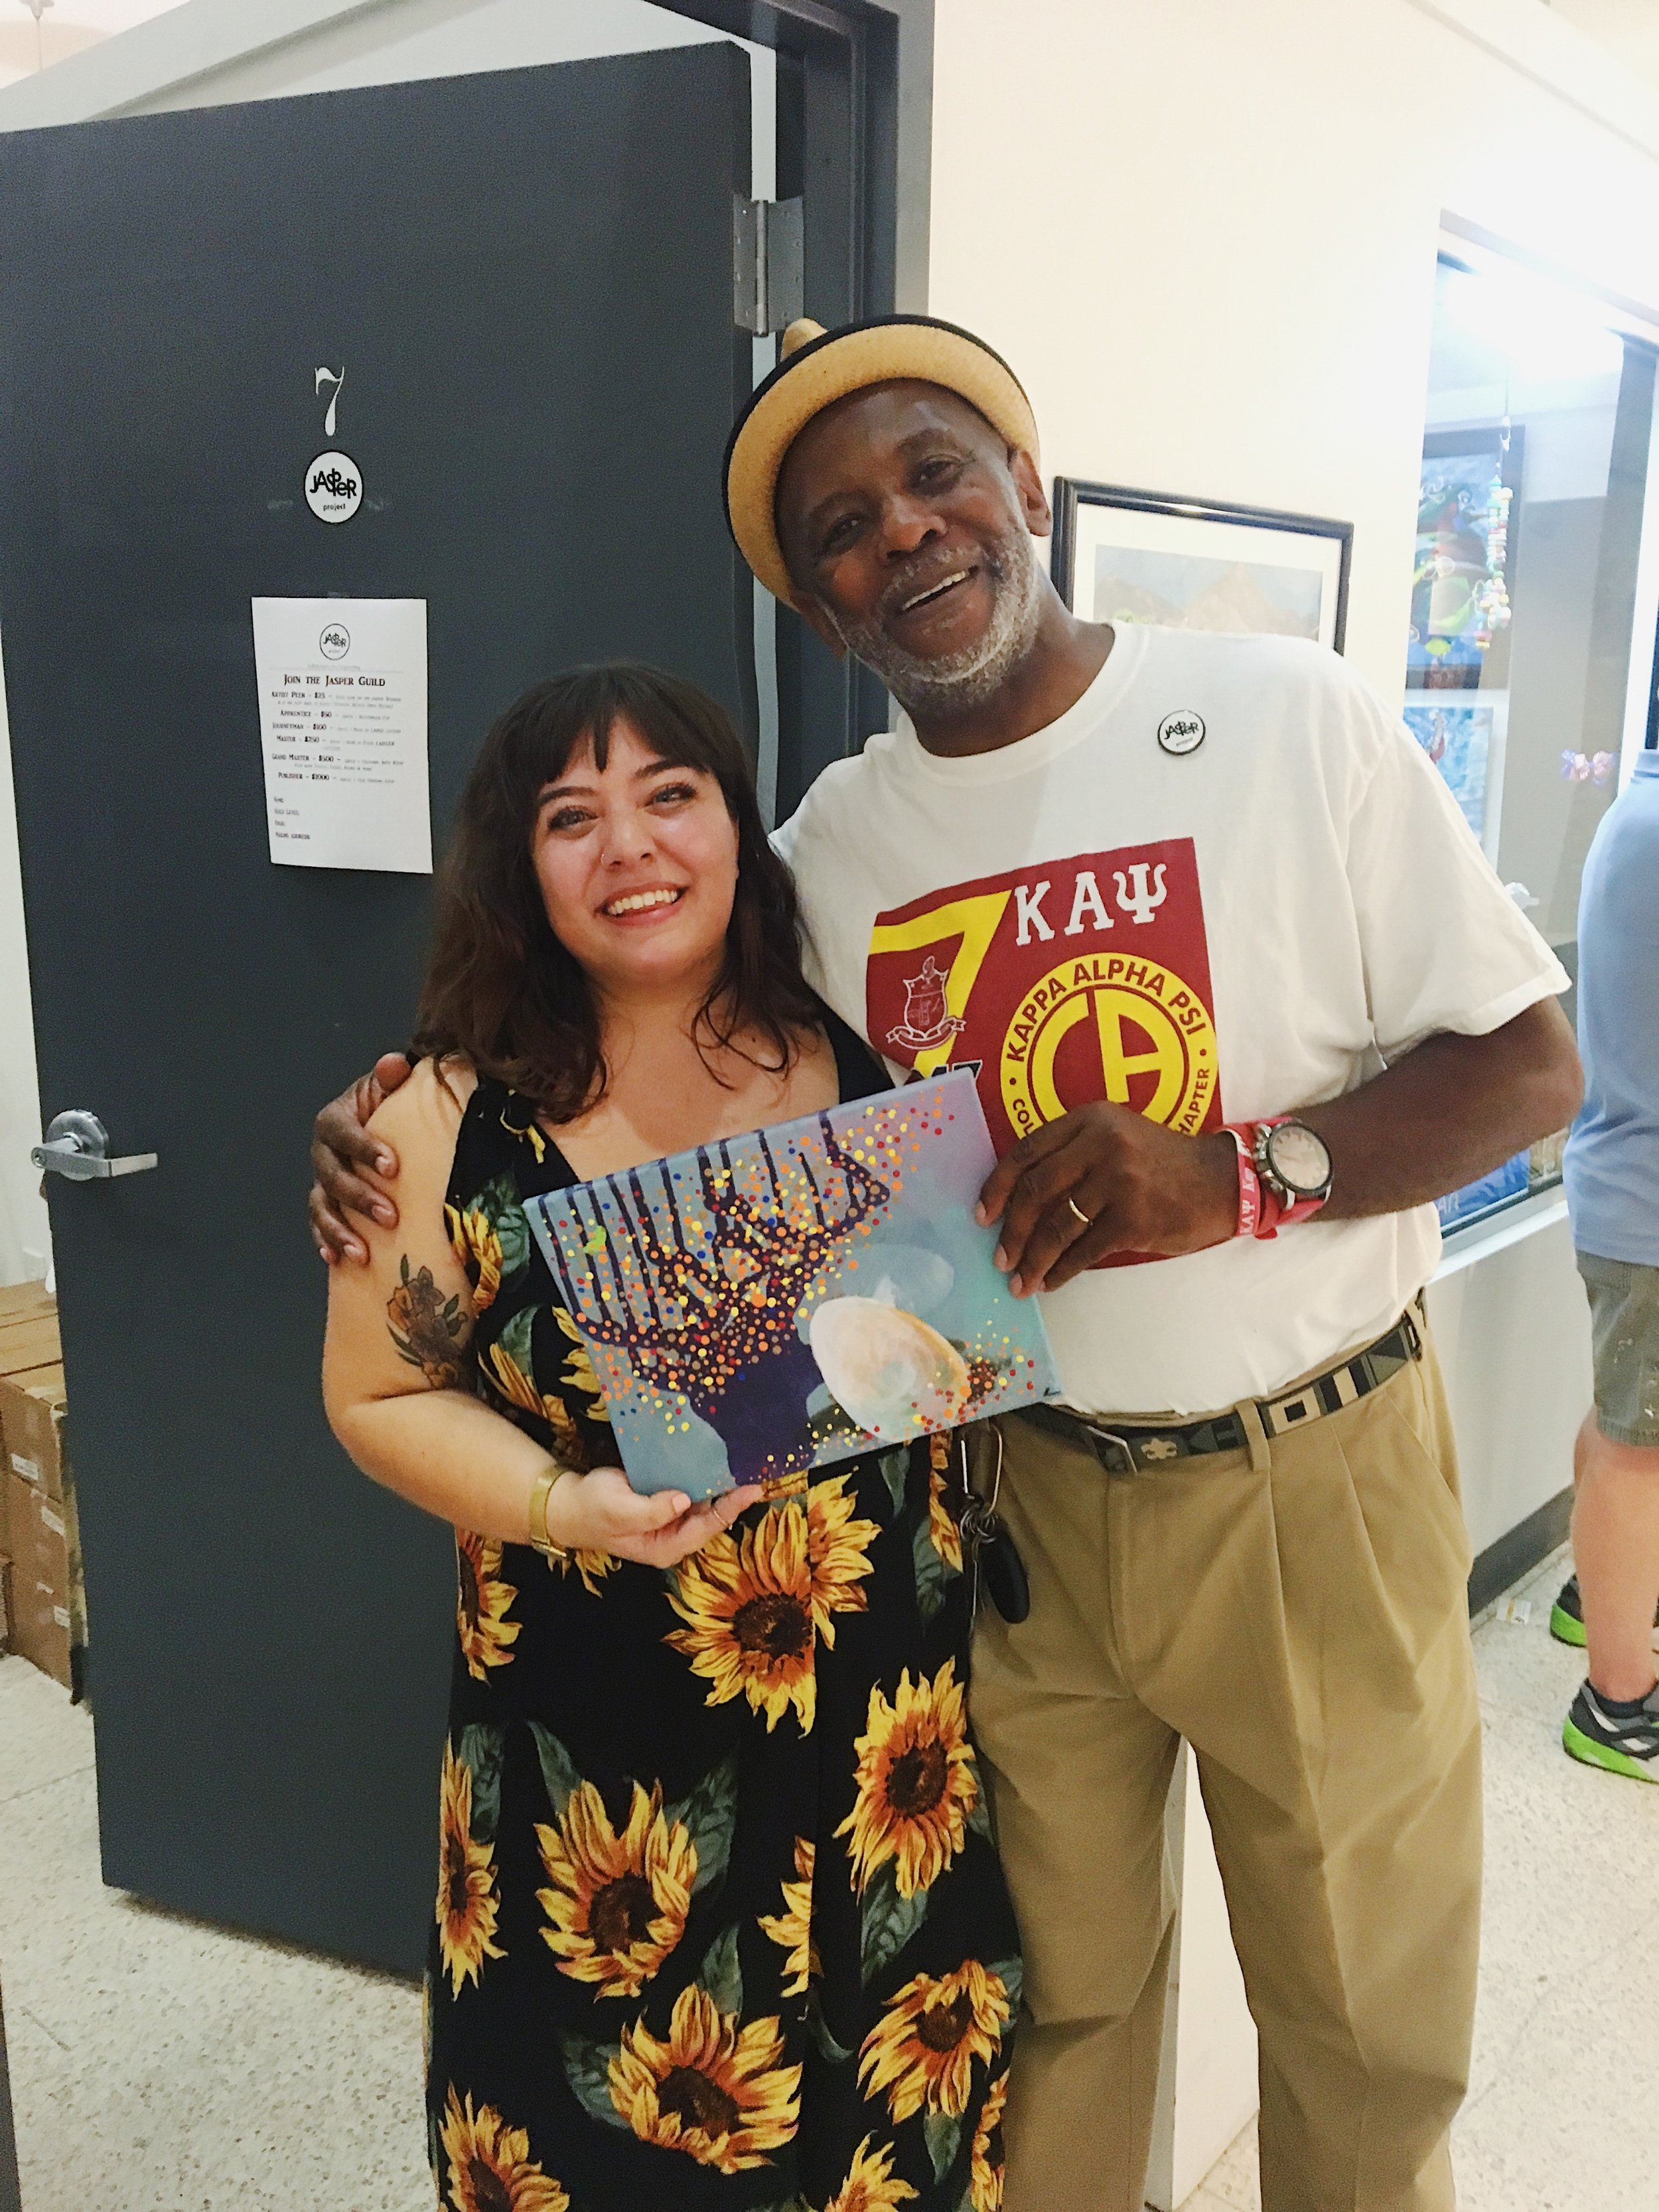 Xan with visual artist Keith Tolen at the Tiny Gallery series